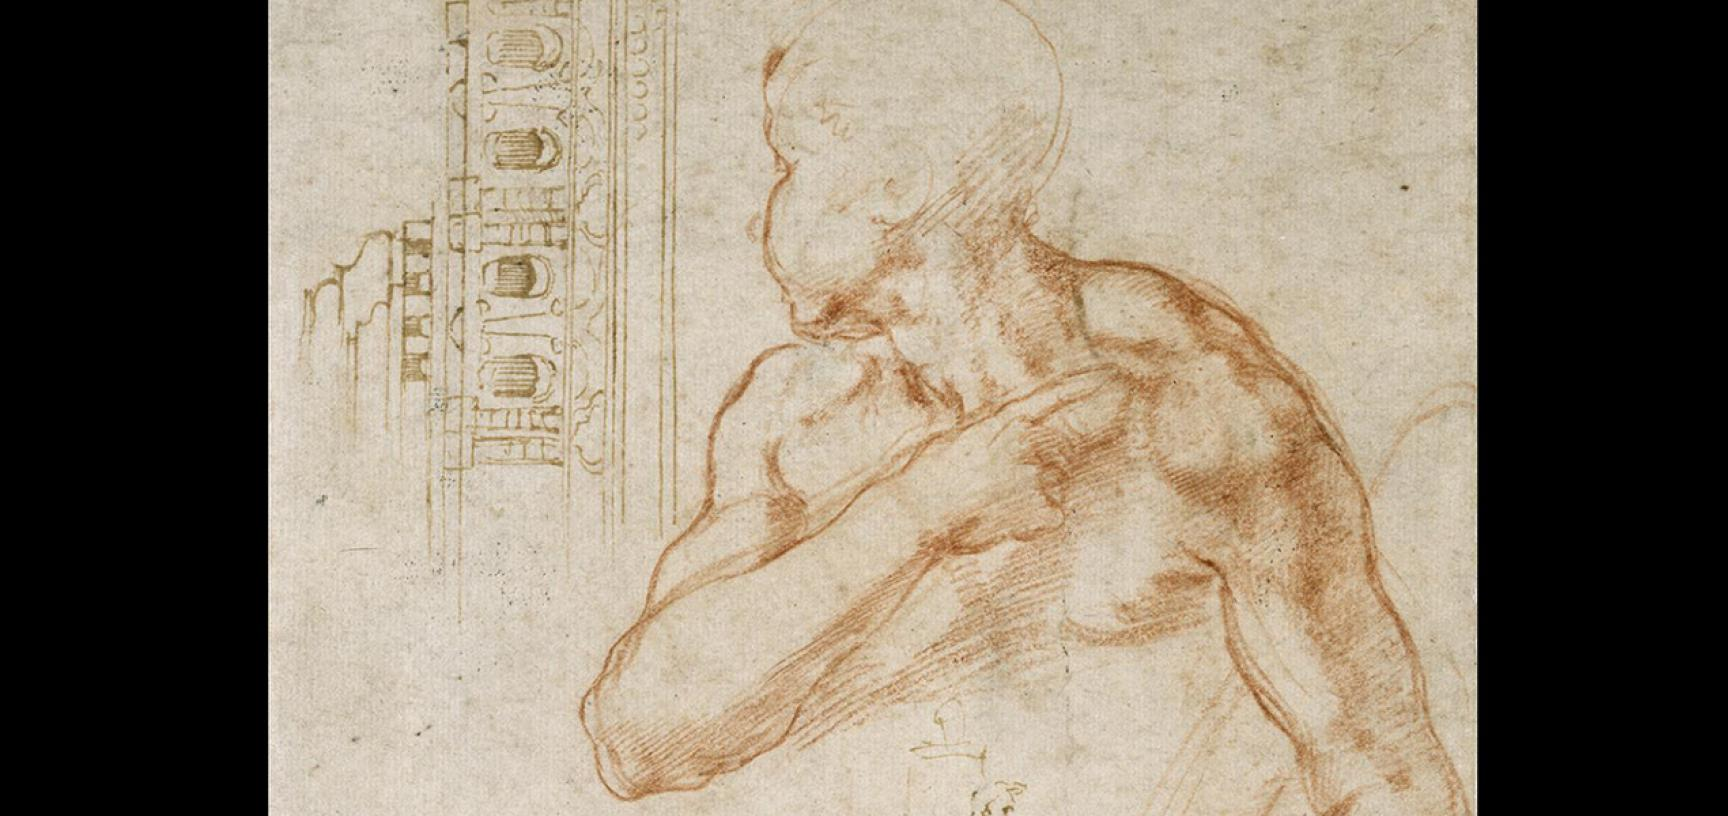 Michelangelo's studies by Michelangelo Buonarroti (detail)